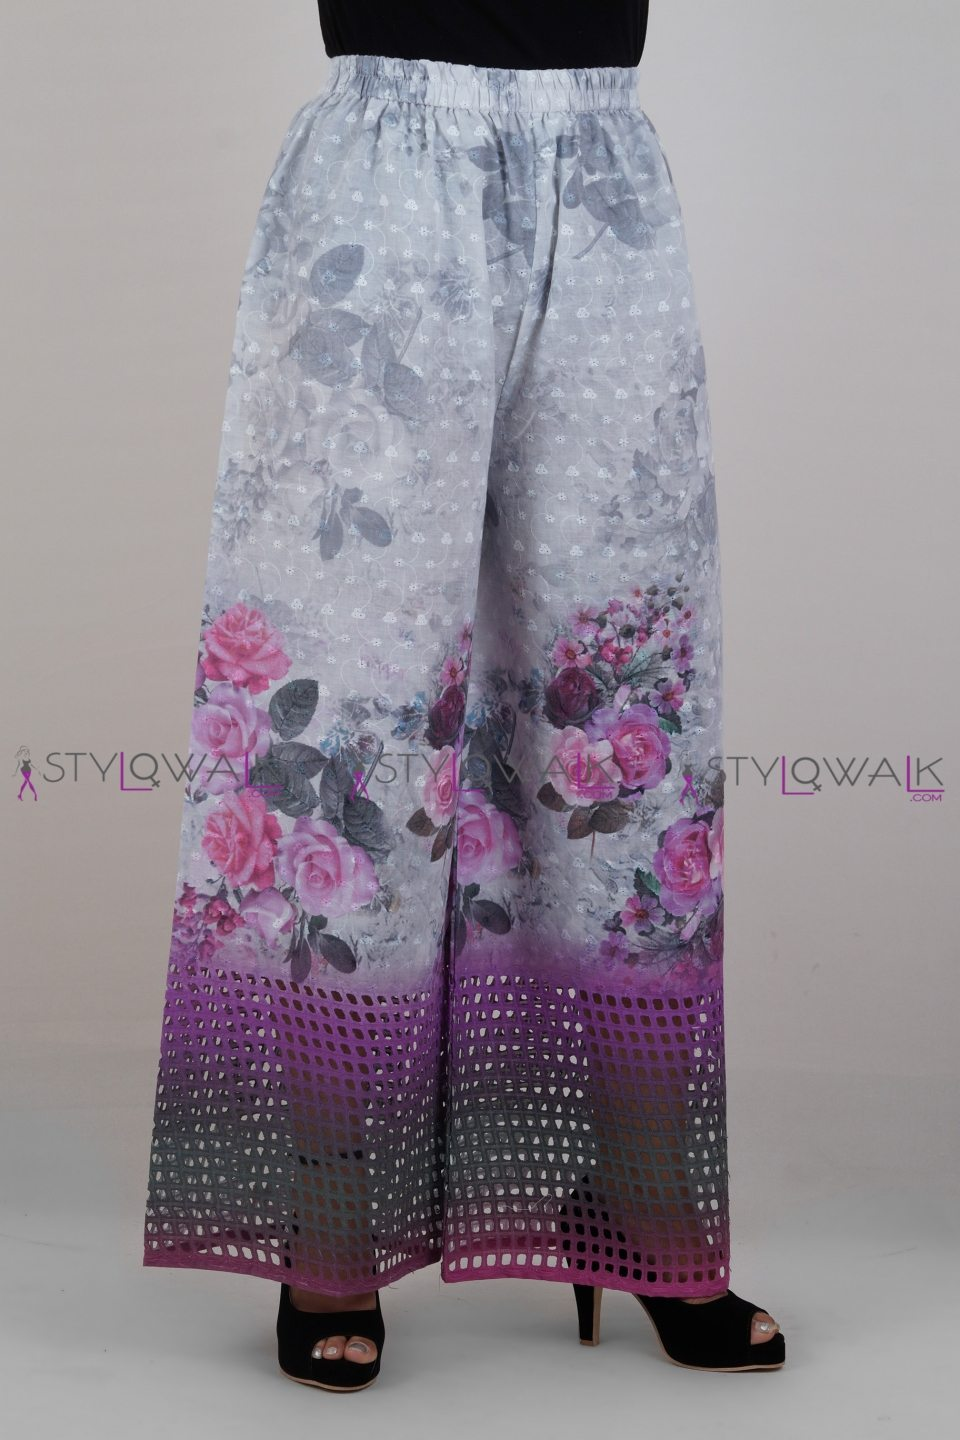 Cotton Chicken 3D Printed Palazzo Pants-8- Stylowalk.com